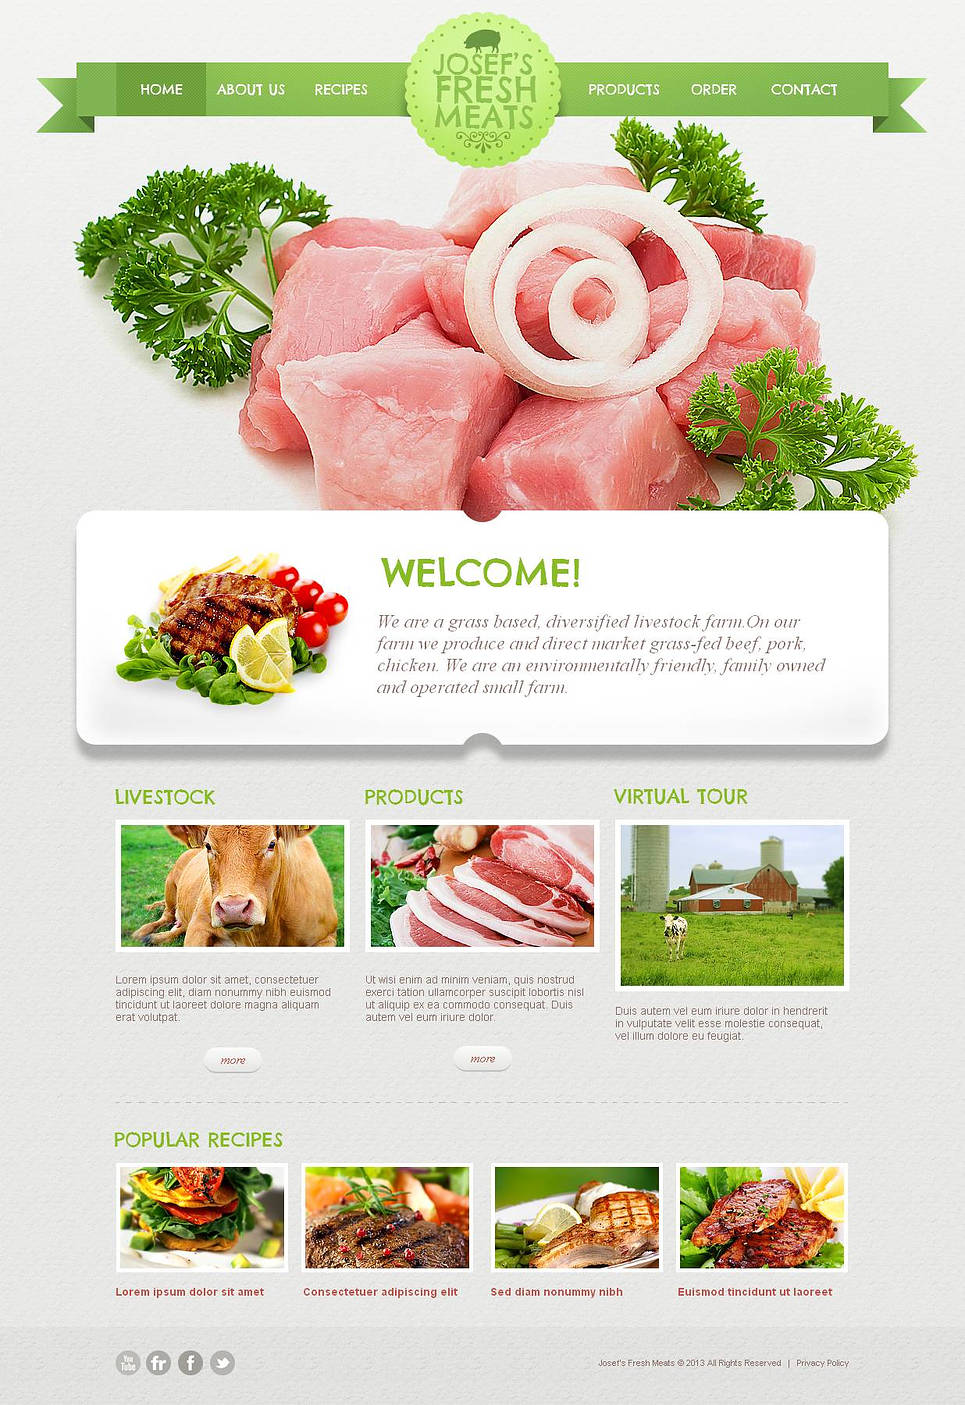 Cattle Farm Website Template with Green Design Elements - image